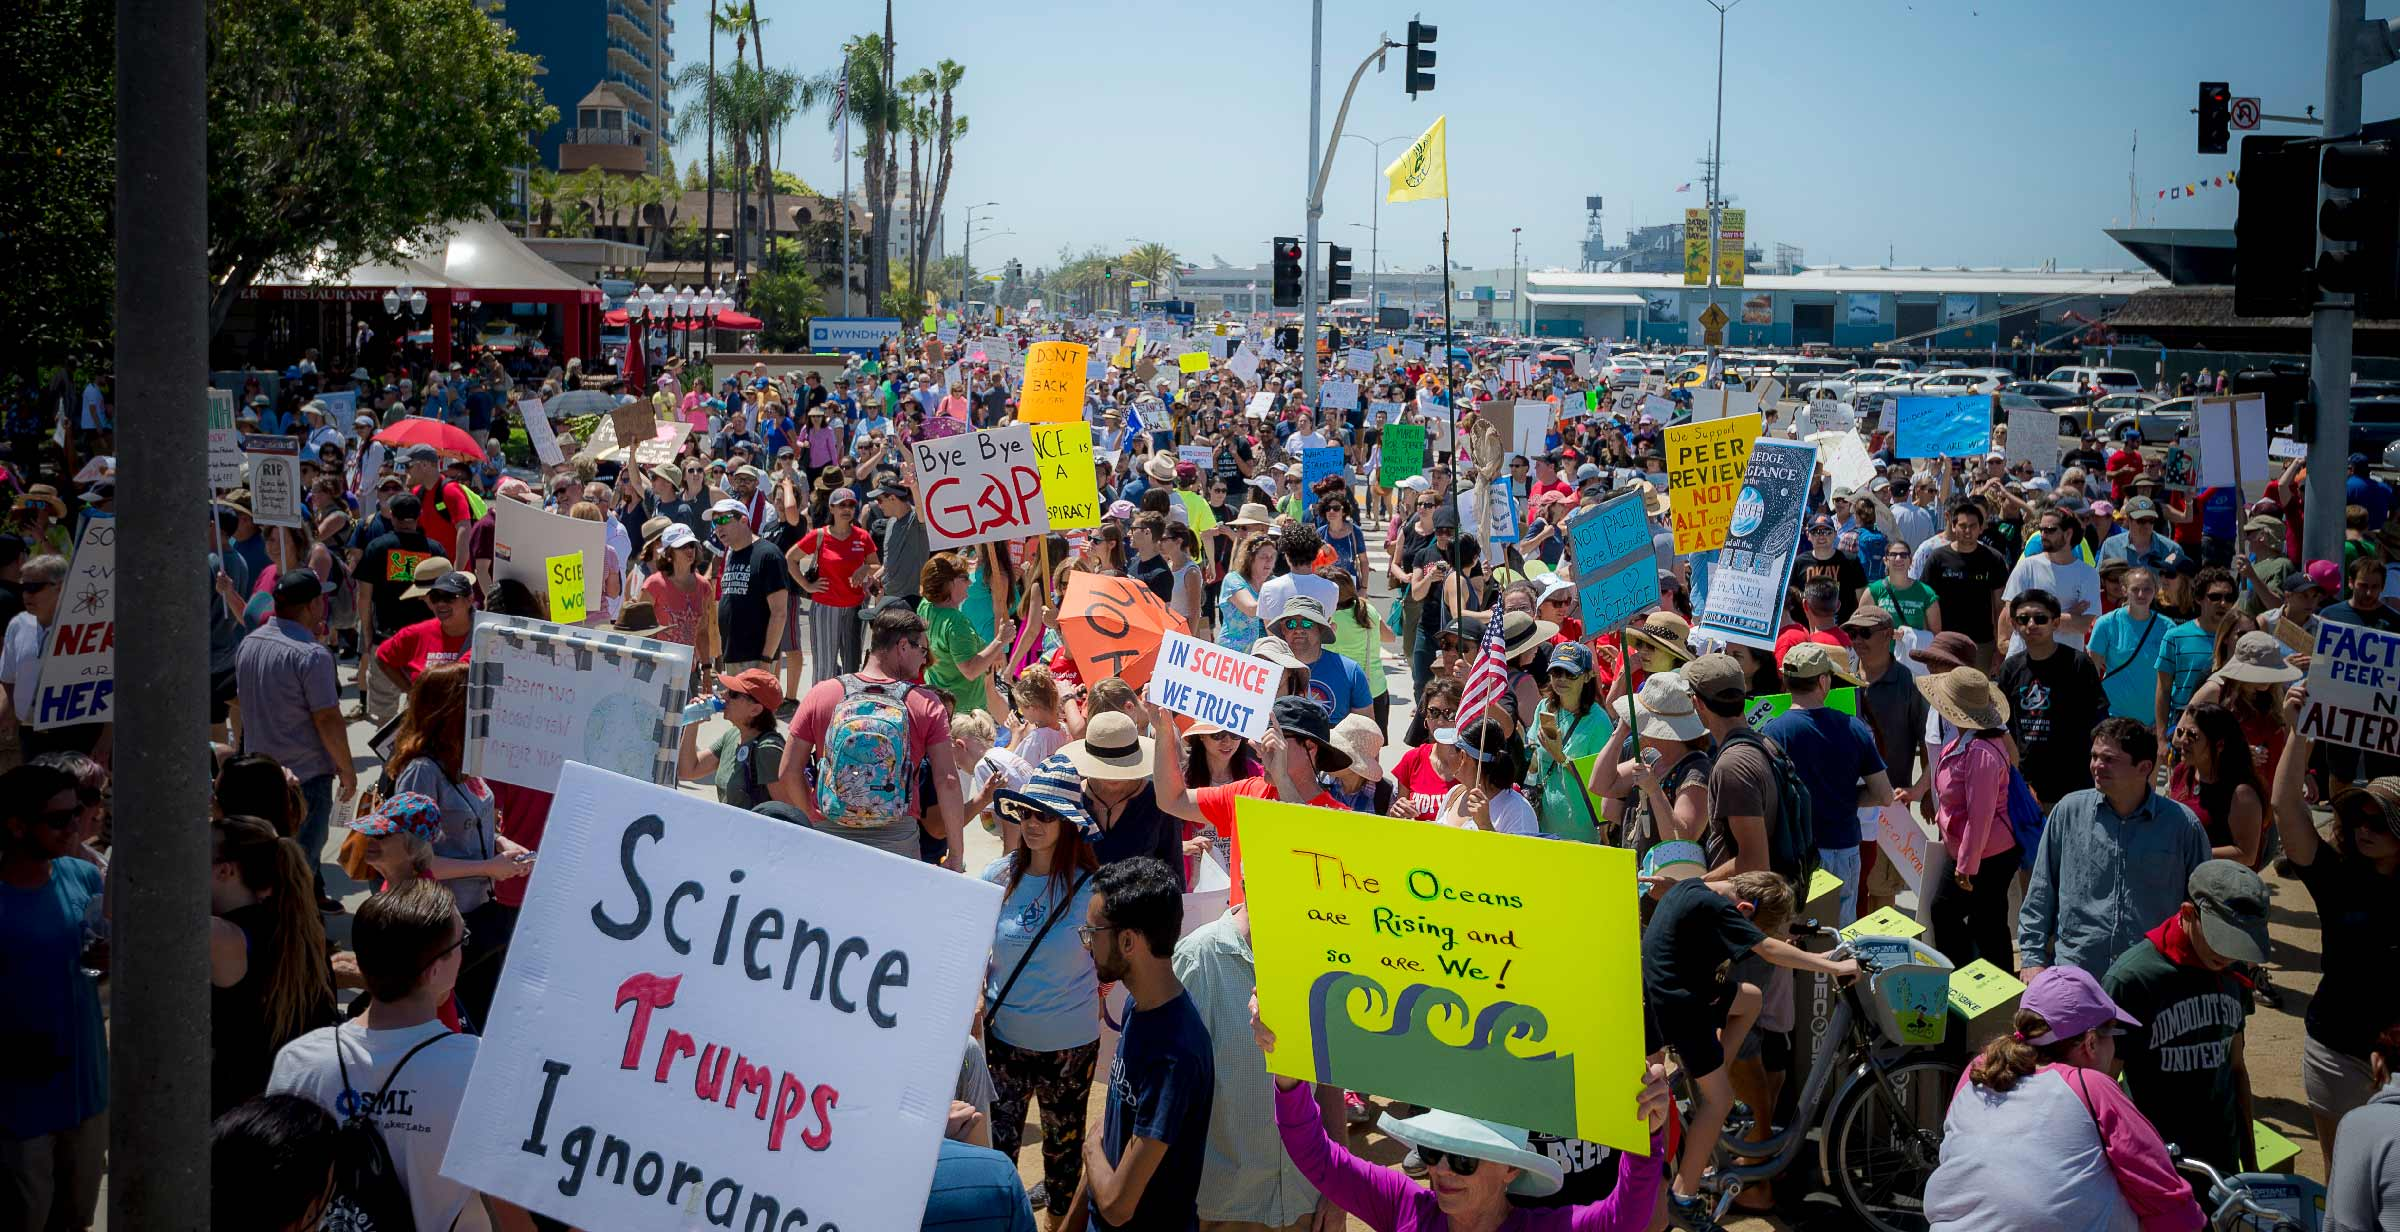 San Diego March for Science 2017